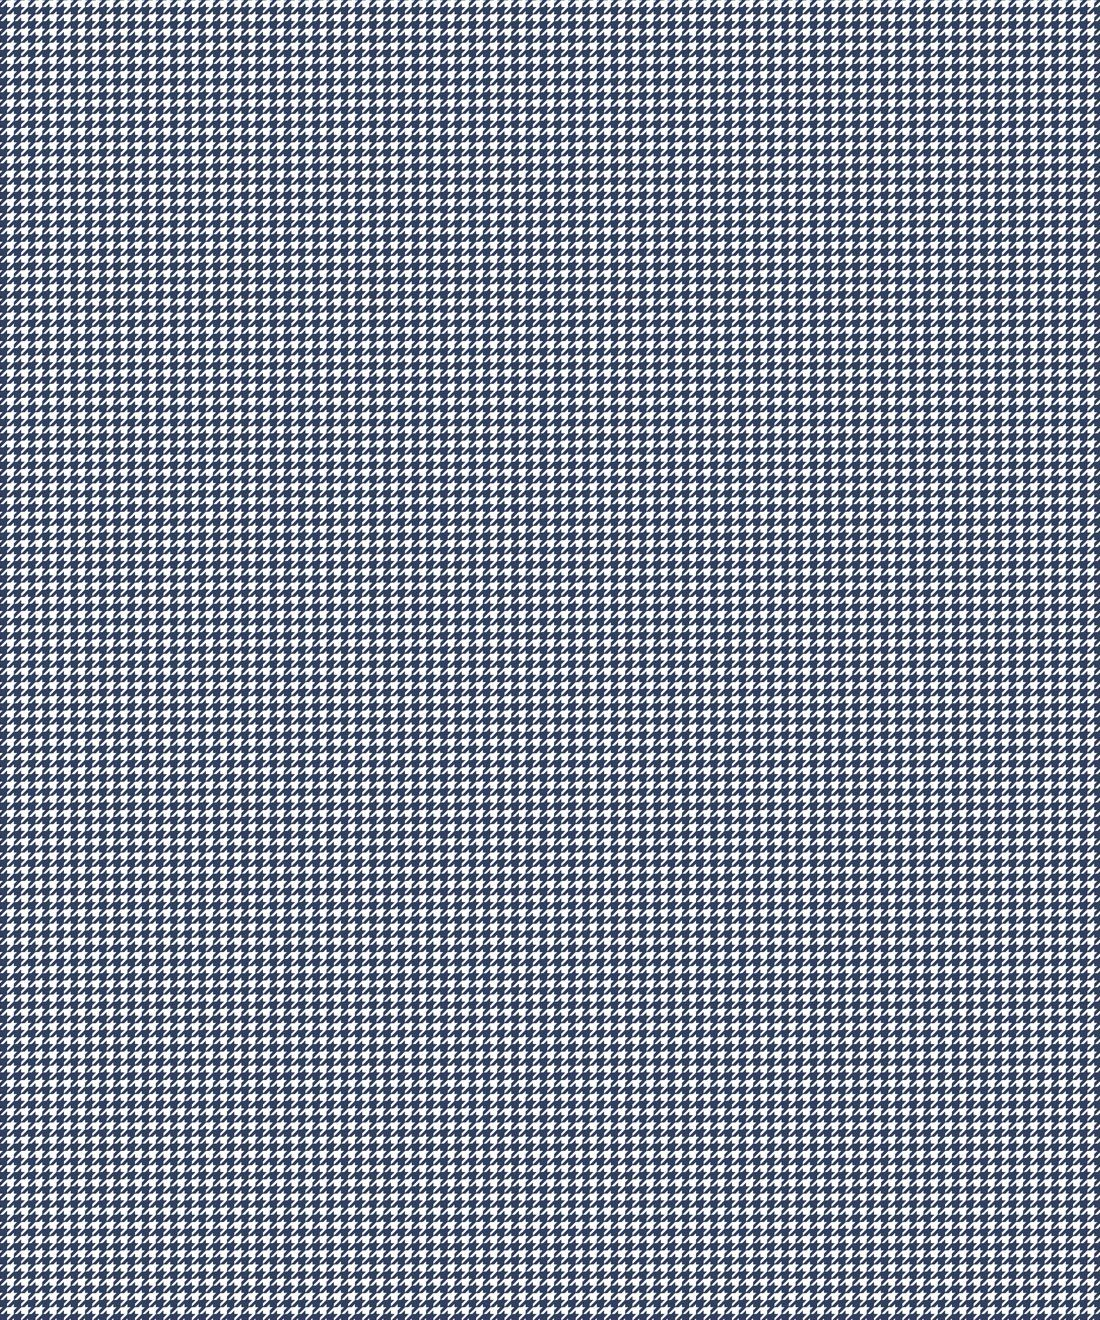 Houndstooth Wallpaper • Dogstooth Wallpaper • Navy •Swatch